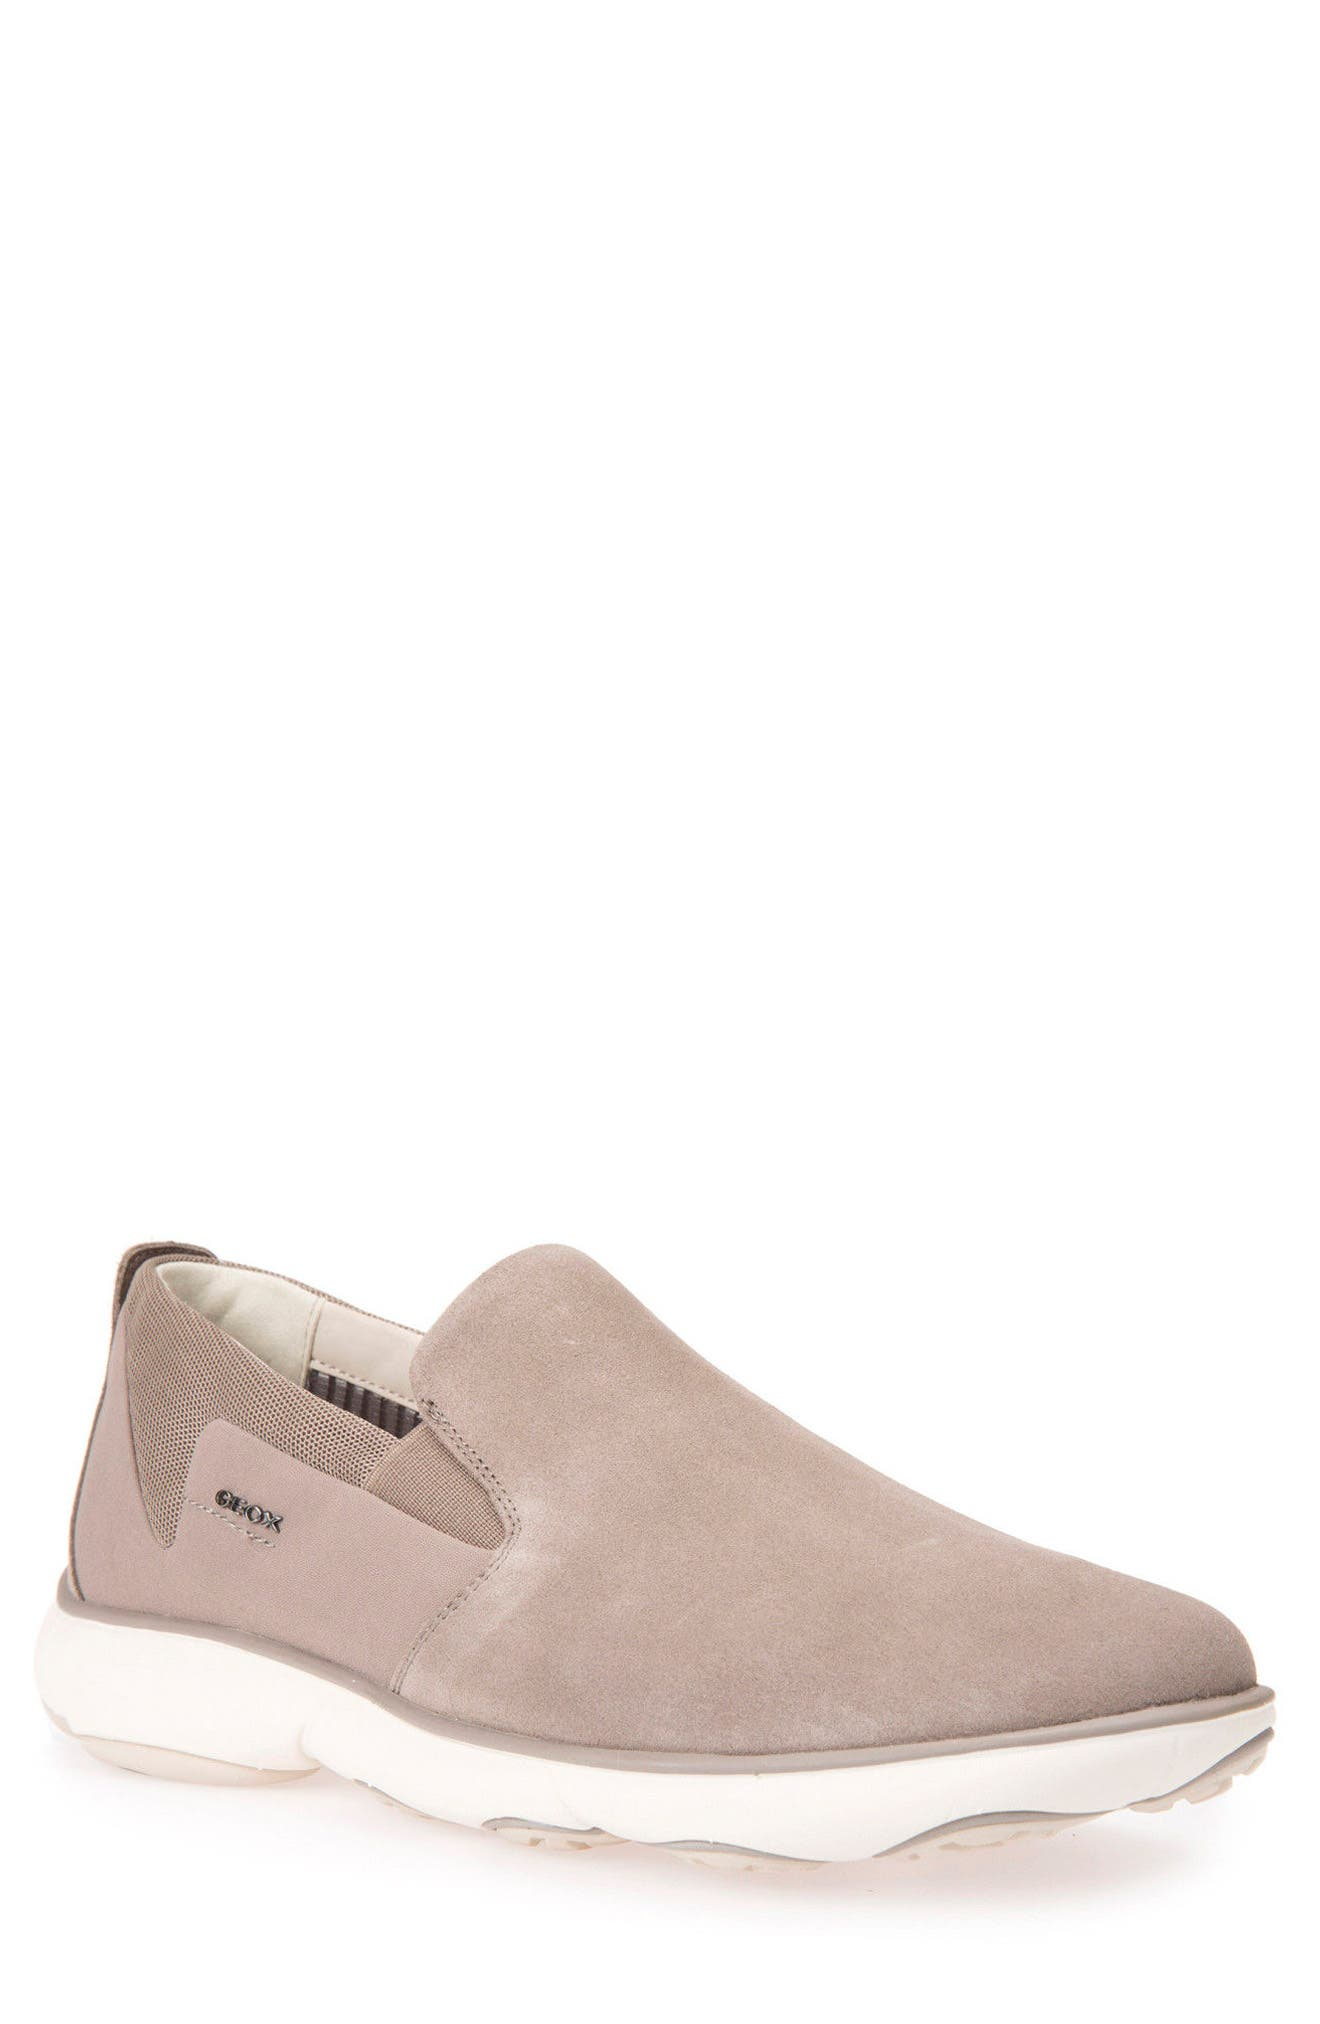 Nebula 44 Slip-On Sneaker,                         Main,                         color, TAUPE